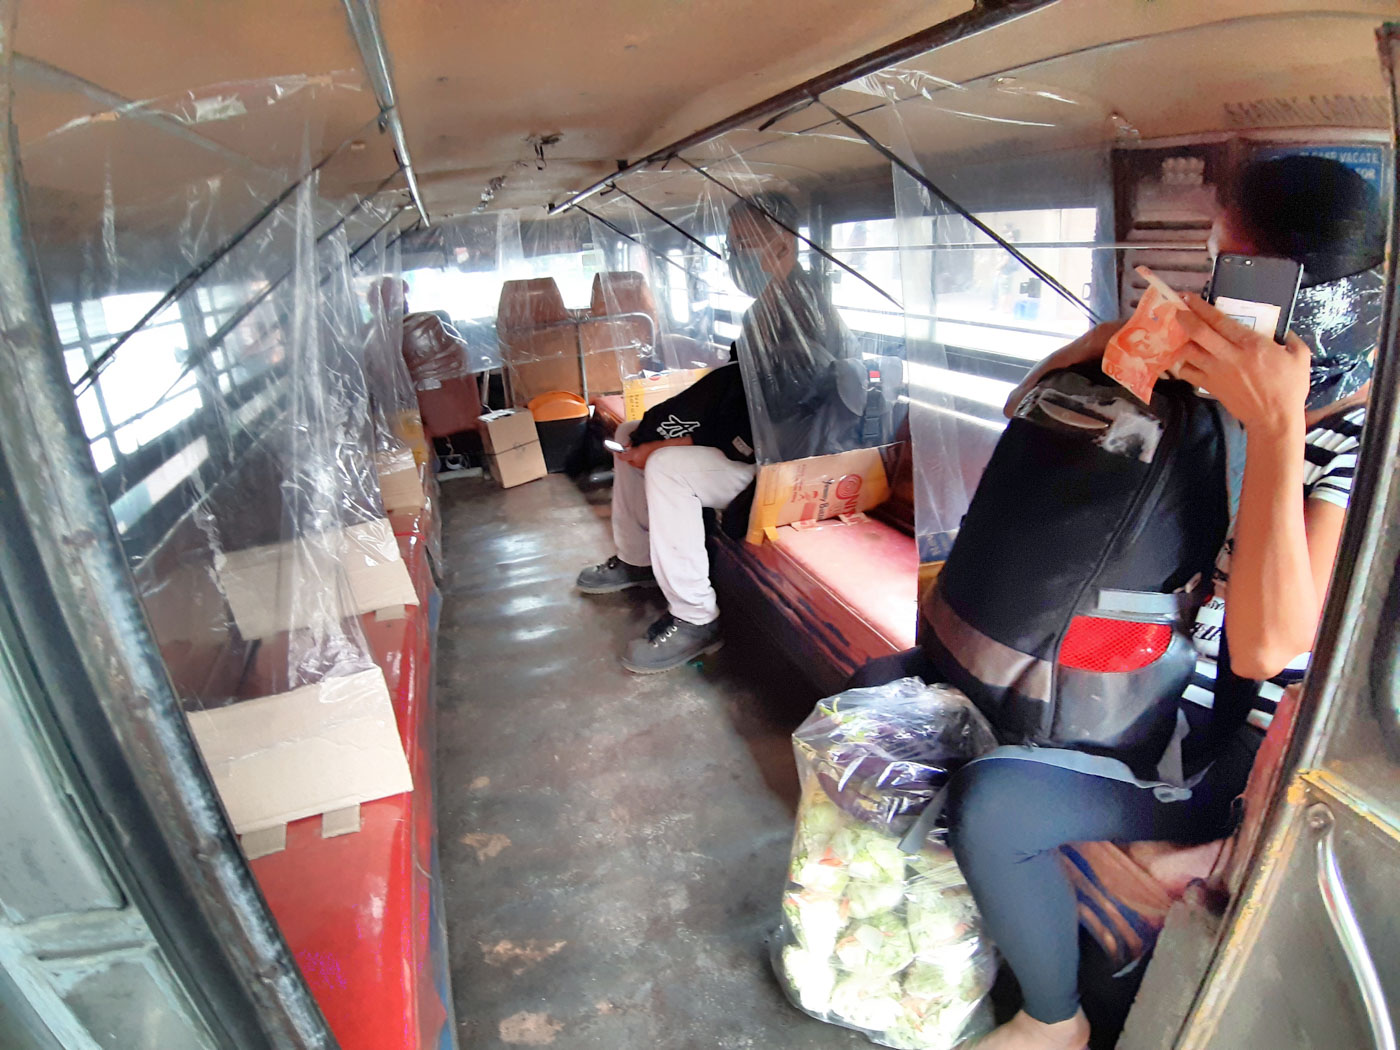 DIVIDERS. A jeepney in Trancoville, Baguio City puts up plastic covers to divide passengers. Photo by Mau Victa/Rappler